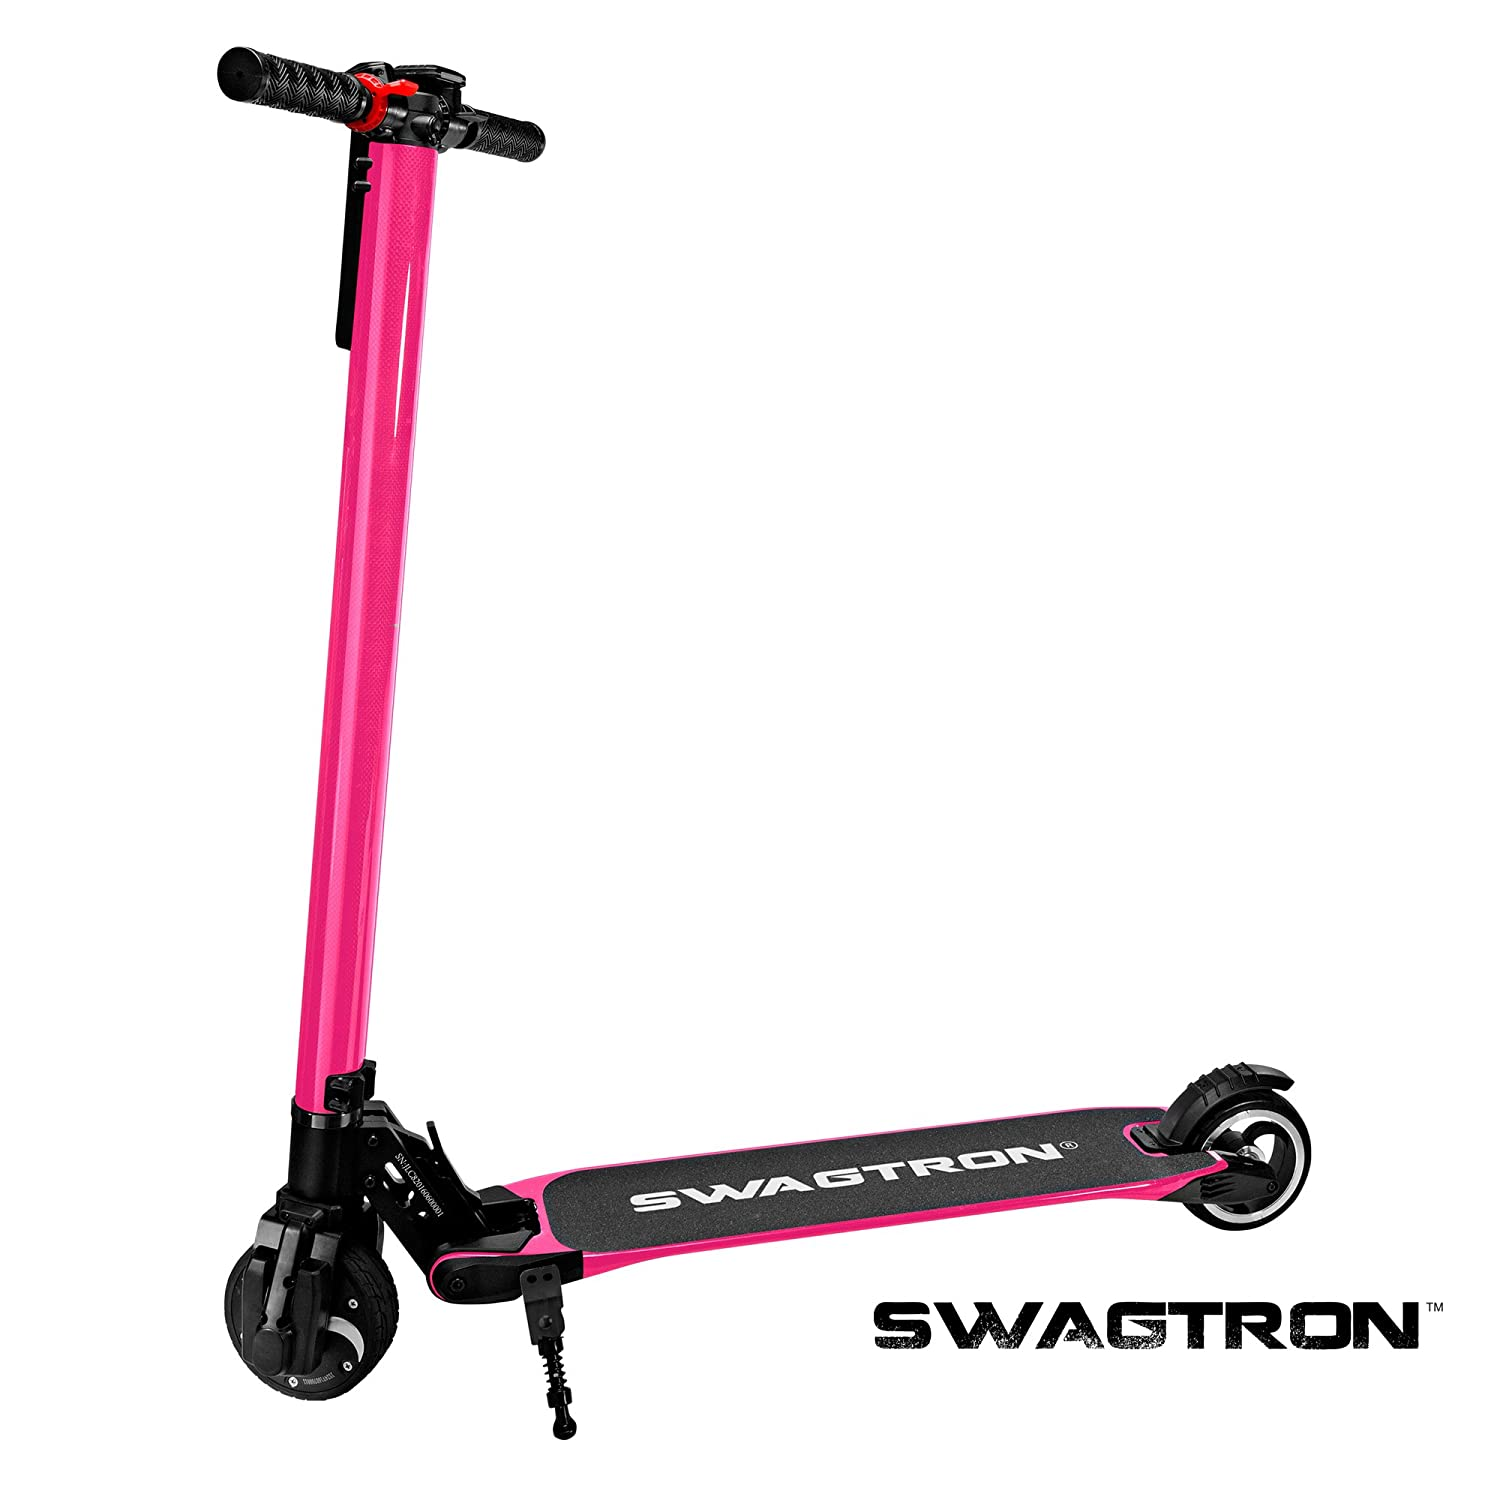 Swagger the world's lightest carbon fiber powered electric scooter